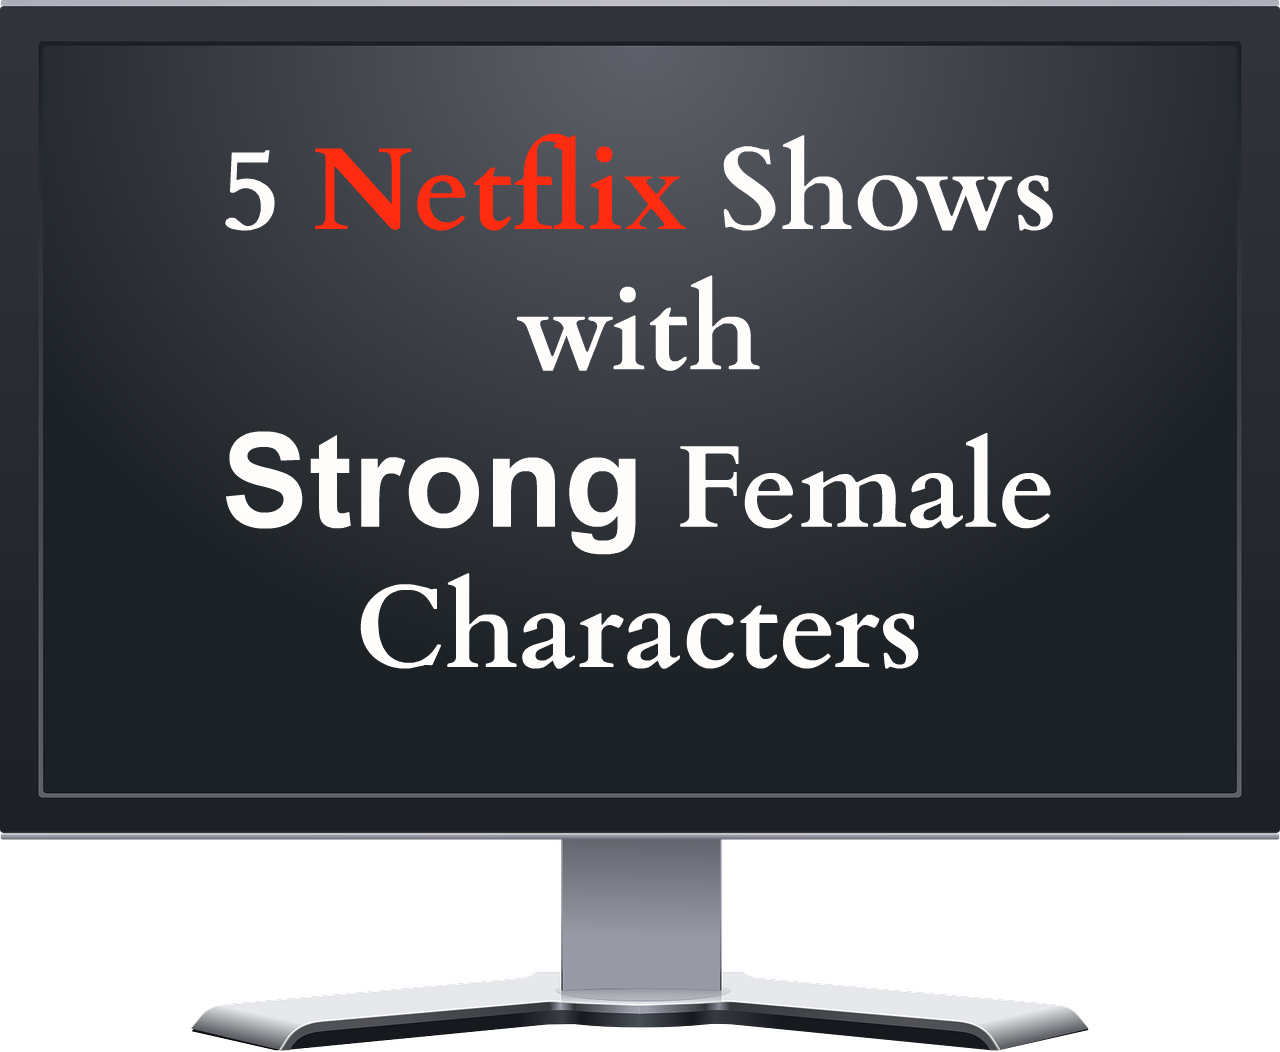 5 Netflix shows with strong female characters